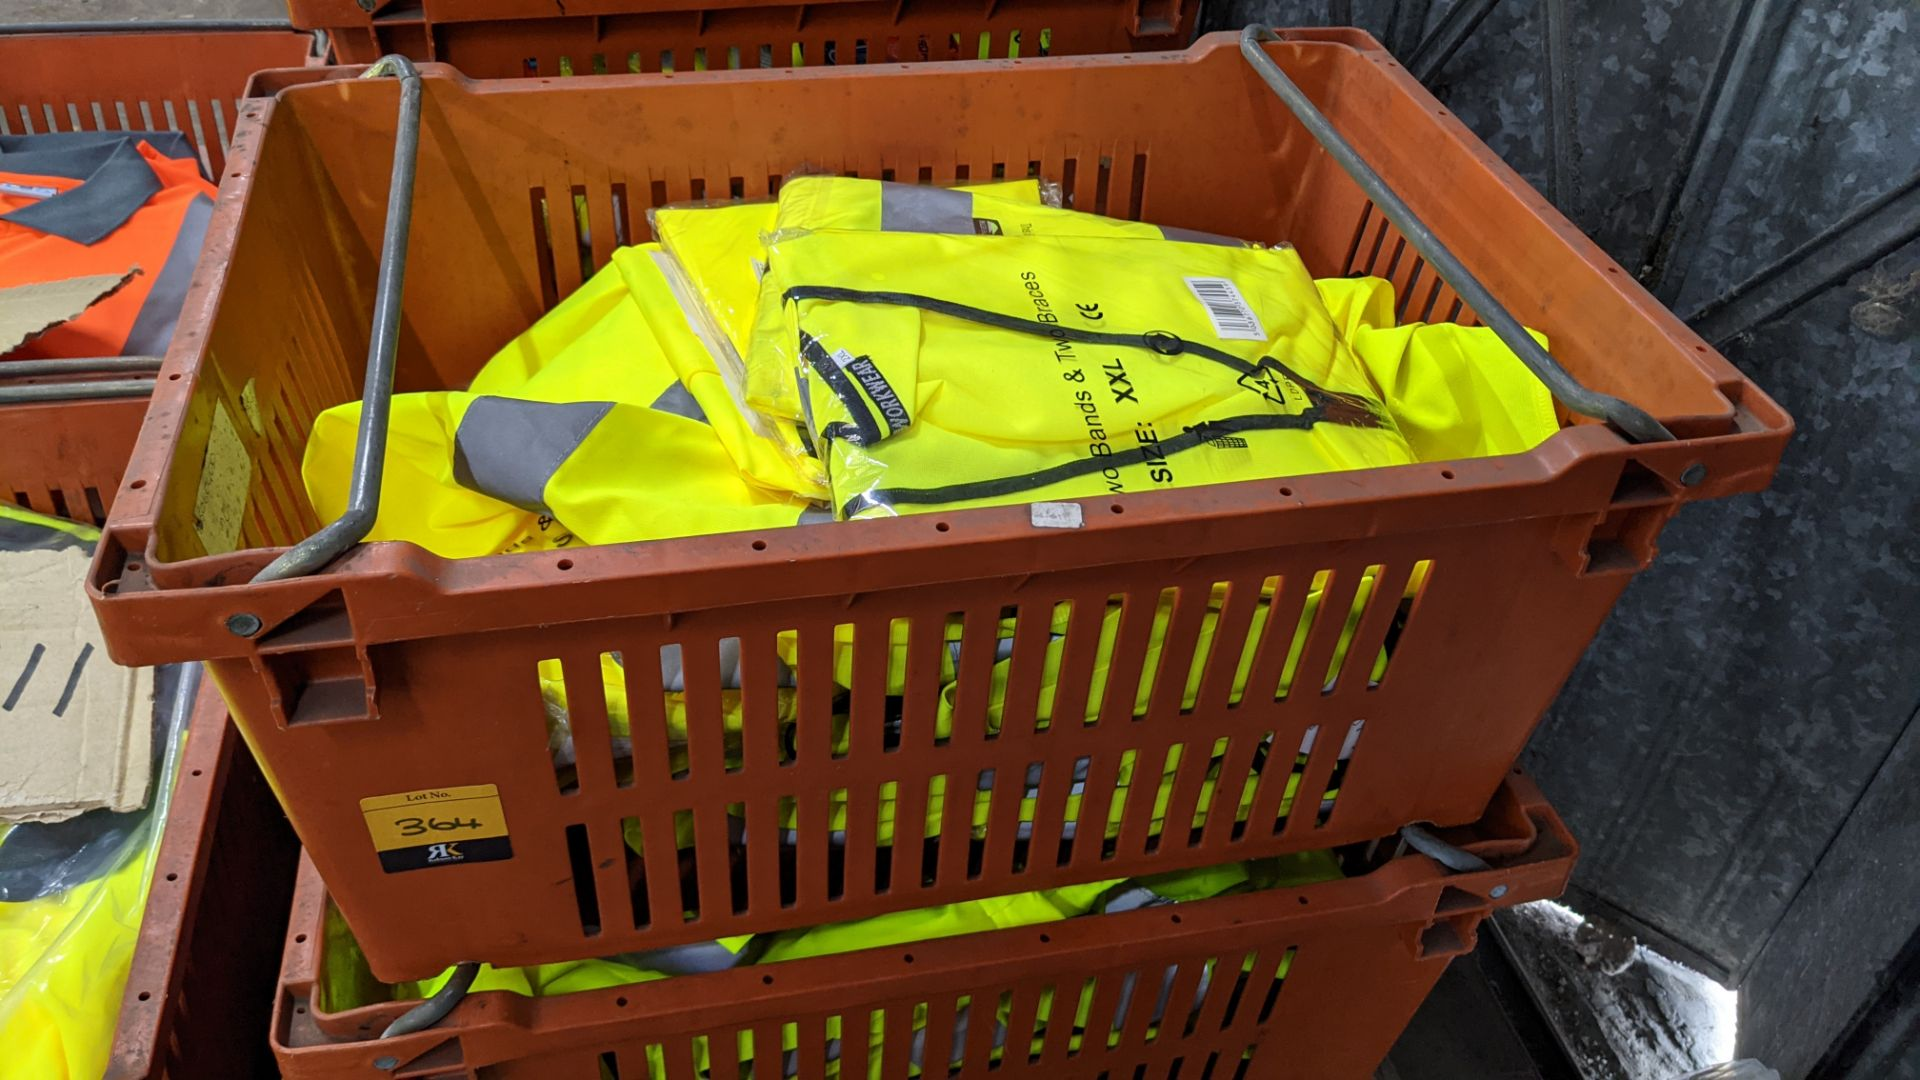 20 off yellow hi-vis vests - Image 3 of 4